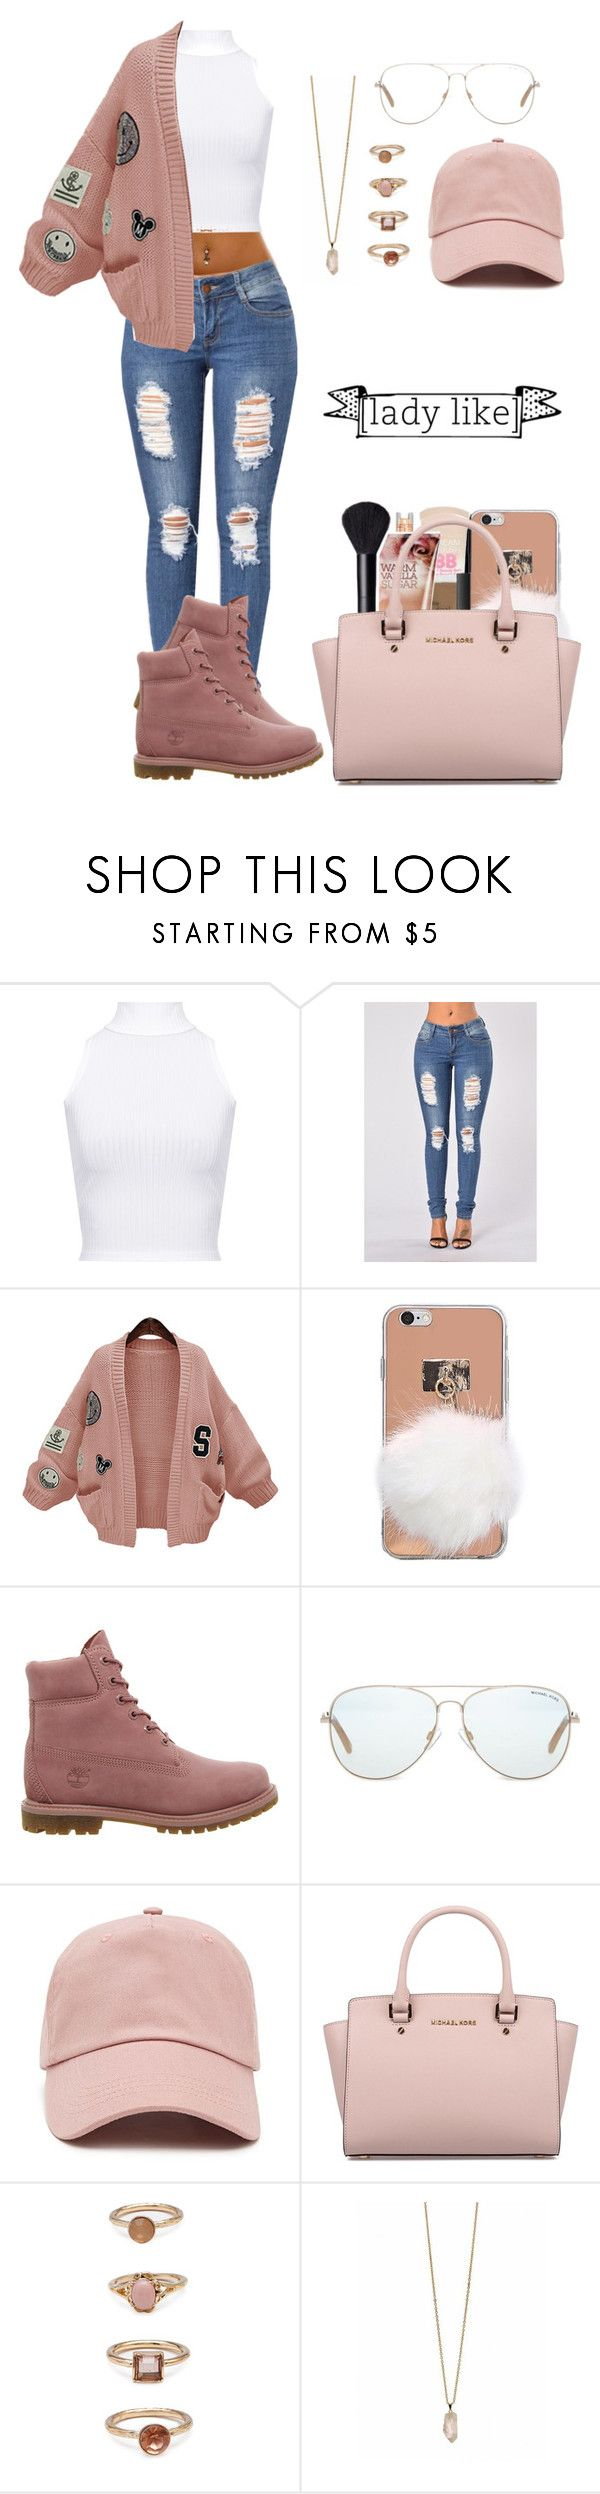 """Lday liike"" by life957 ❤ liked on Polyvore featuring WearAll, WithChic, Timberland, Michael Kors, Forever 21 and Zoya"